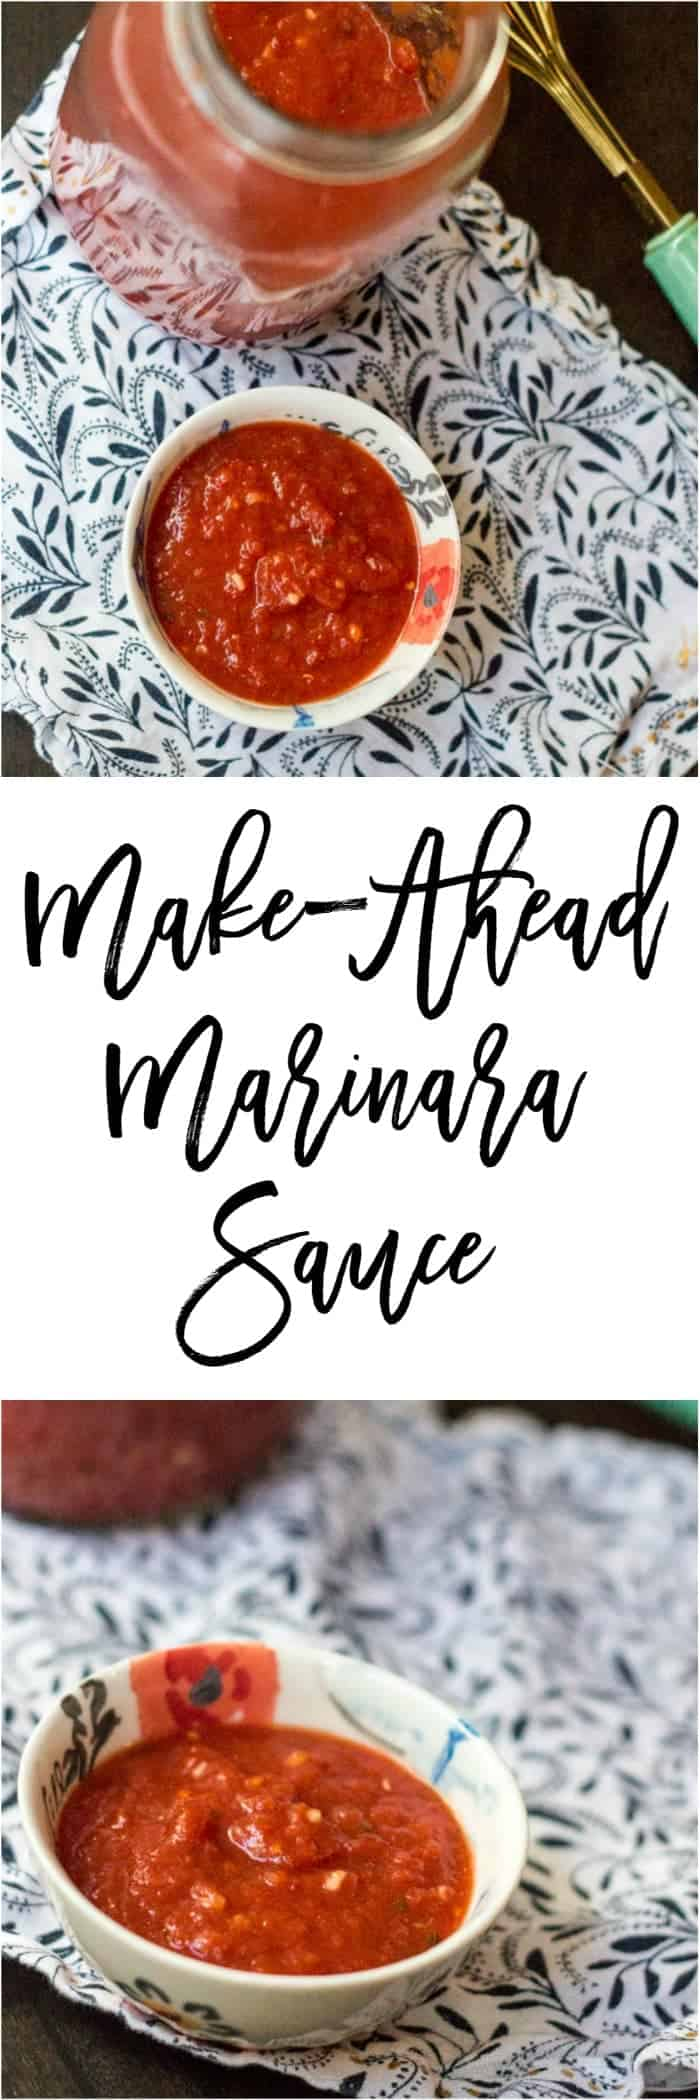 Make Ahead Marinara Sauce